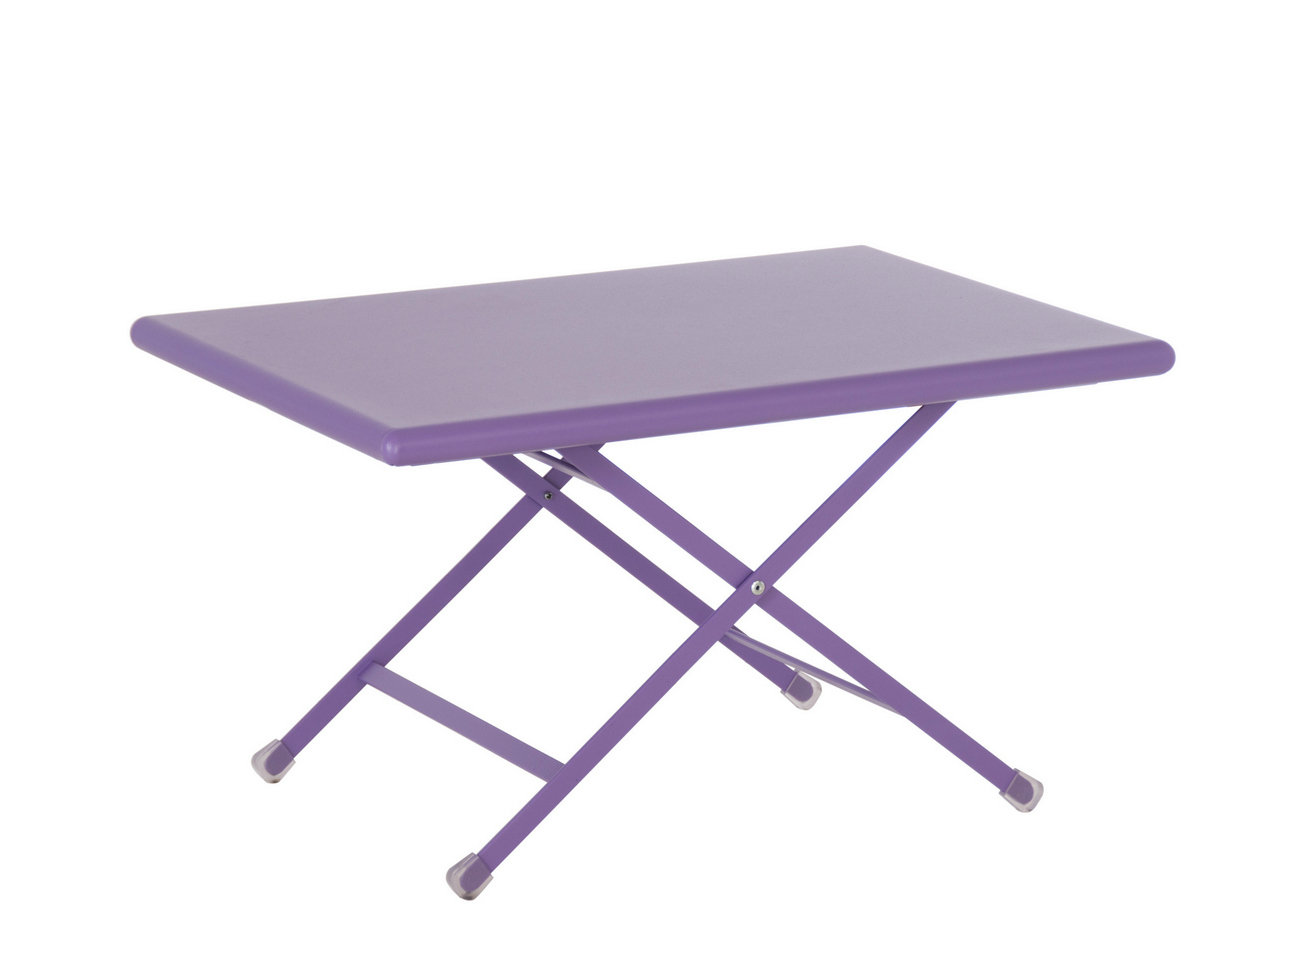 Table de jardin design leroy merlin - Leroy merlin table pliante ...